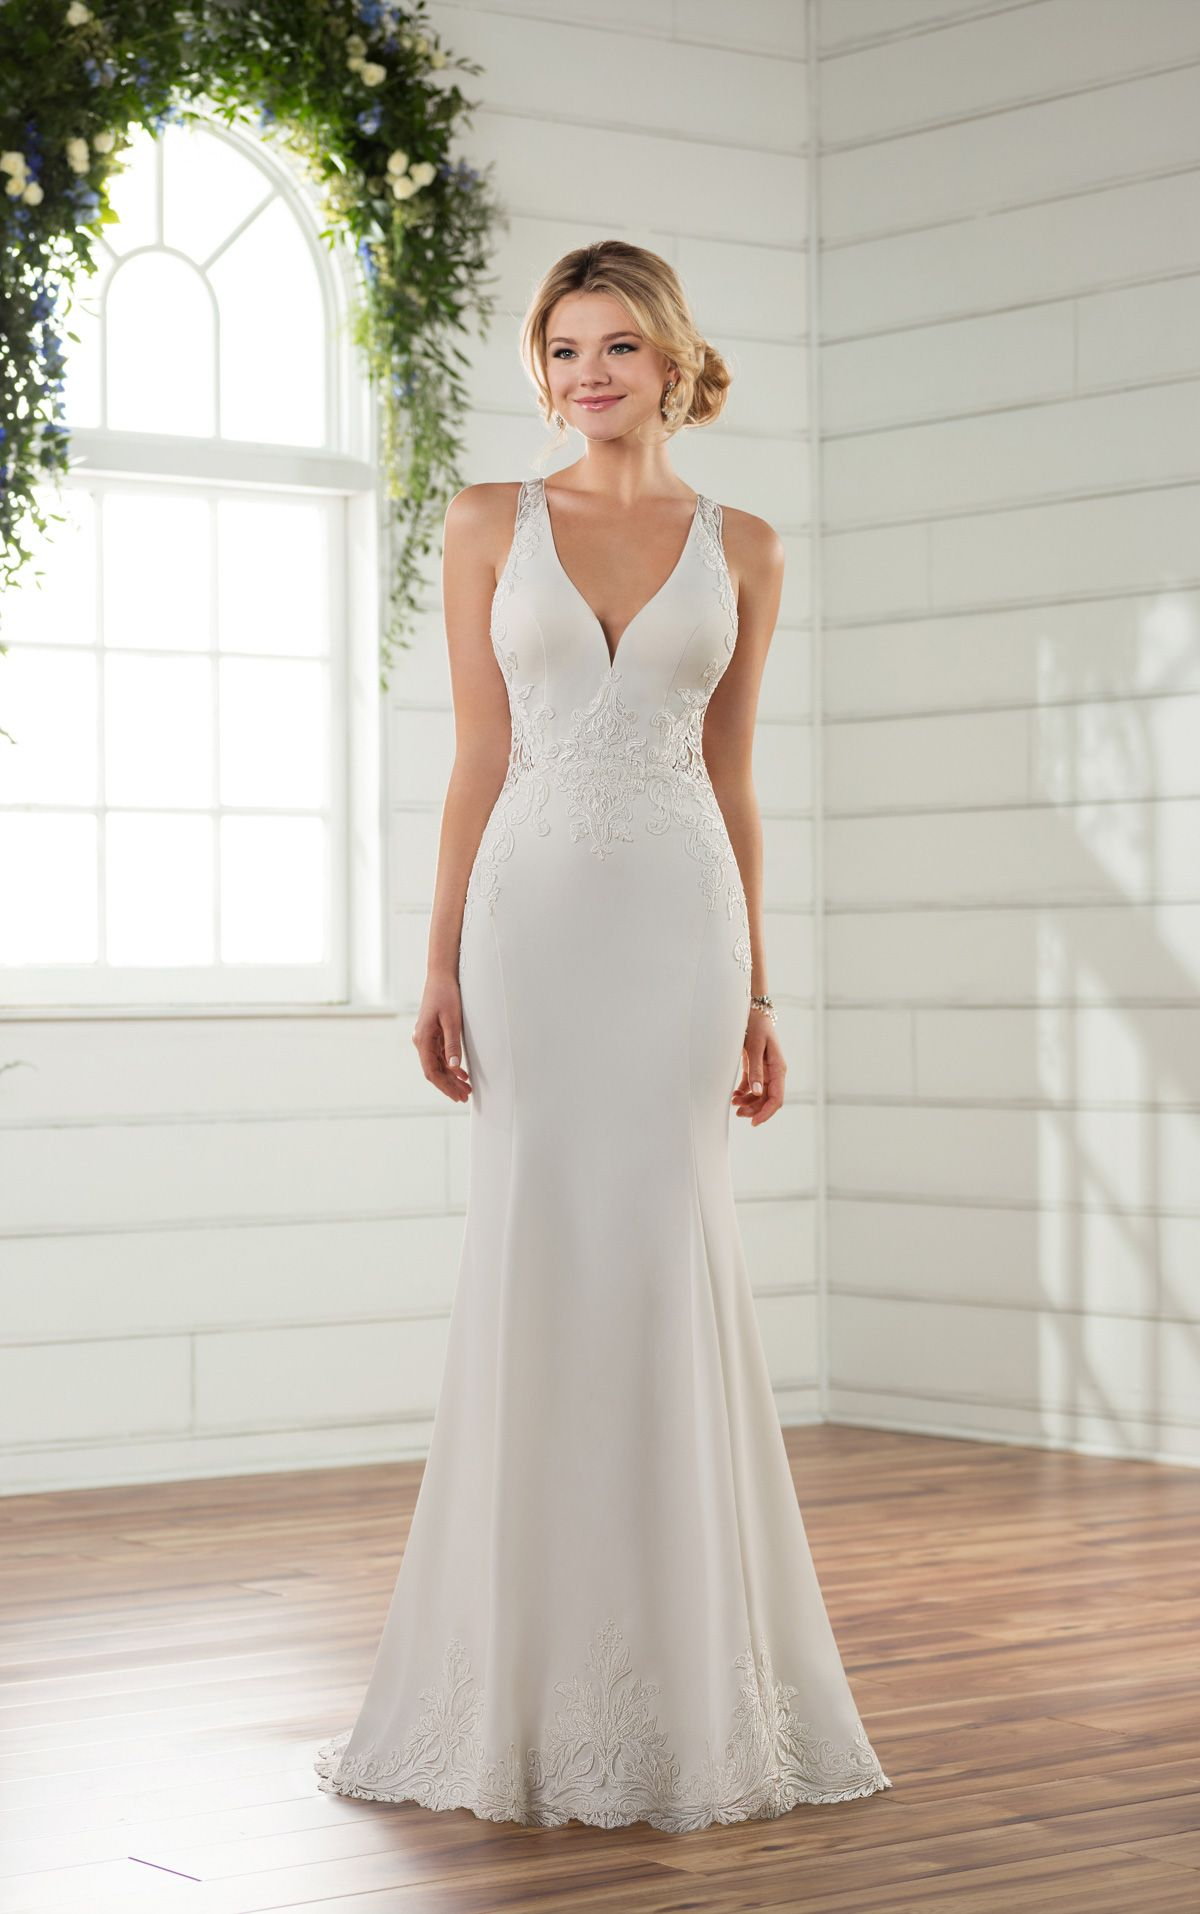 This beach wedding gown with sheer side cutouts from Essense of Australia  is anything but ordinary with lace and crepe fabric and a sleek column  silhouette. 86b836557d